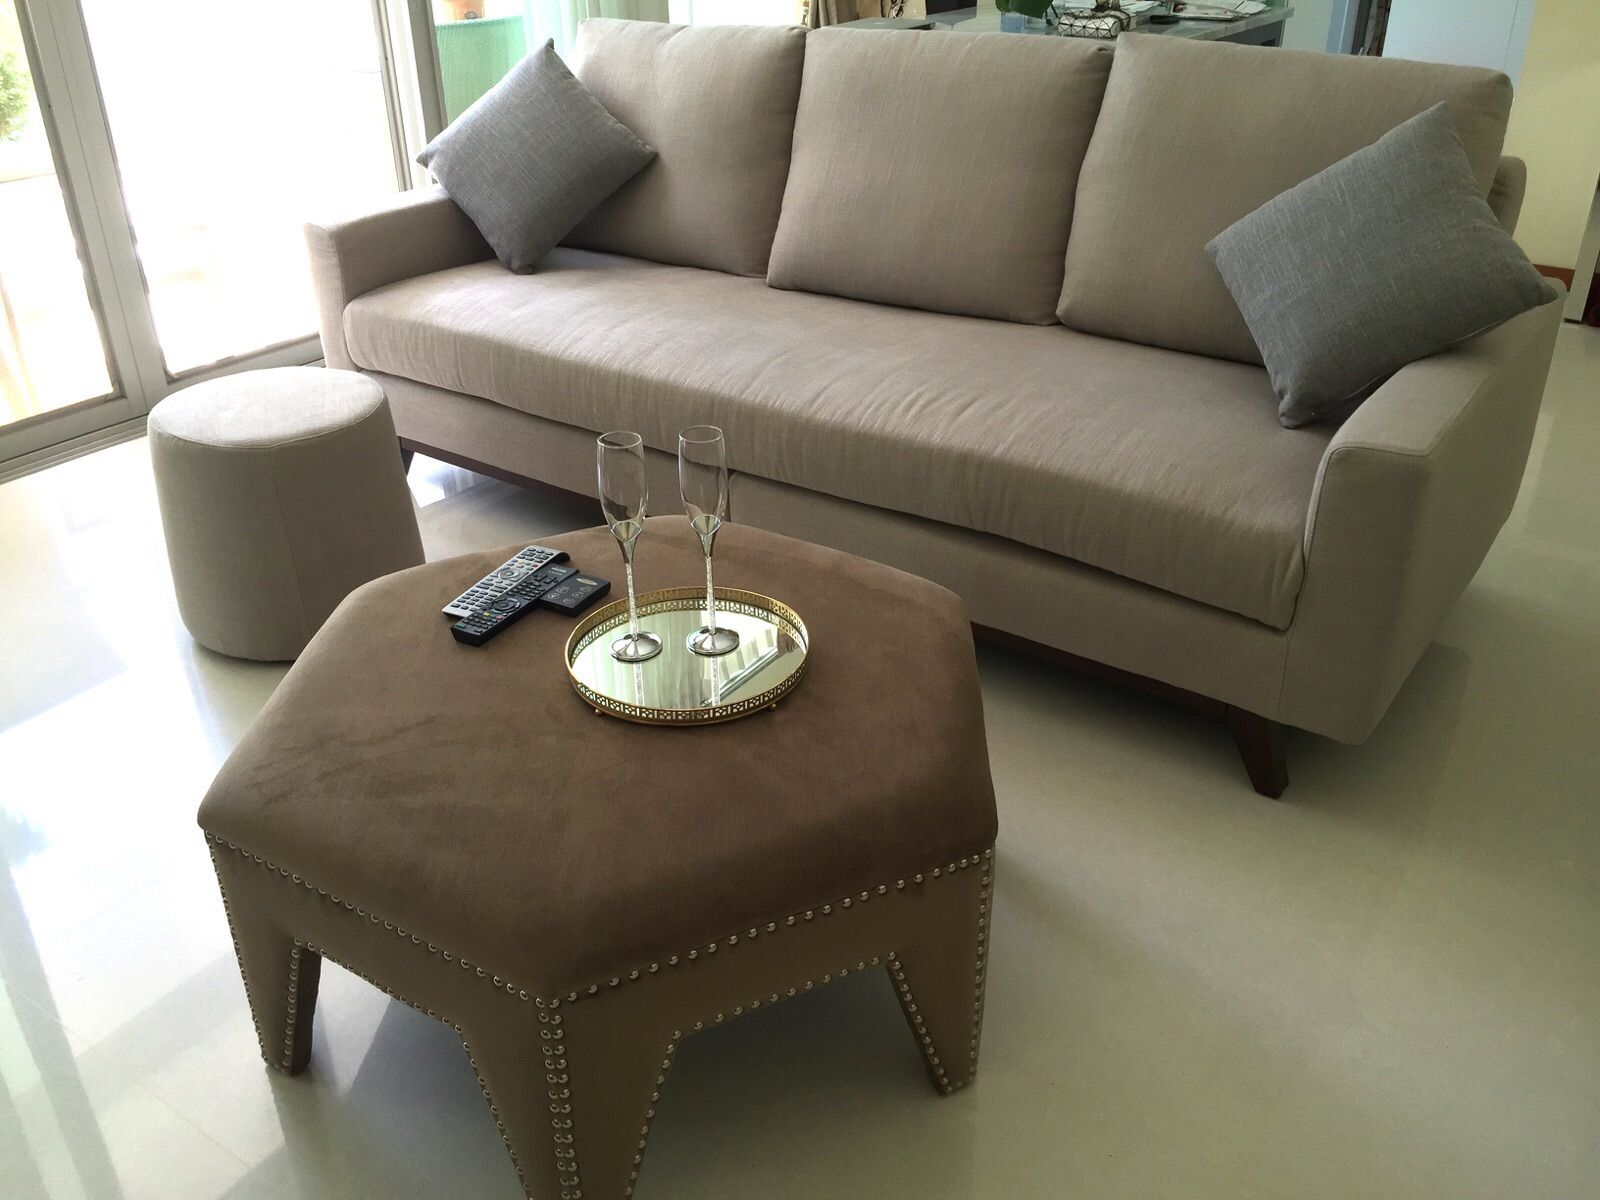 Keeping It Simple With A Morley Sofa Because Sometimes Less Is More Meet Morley At Etch Bol Custom Furniture Top Furniture Stores Furniture Design